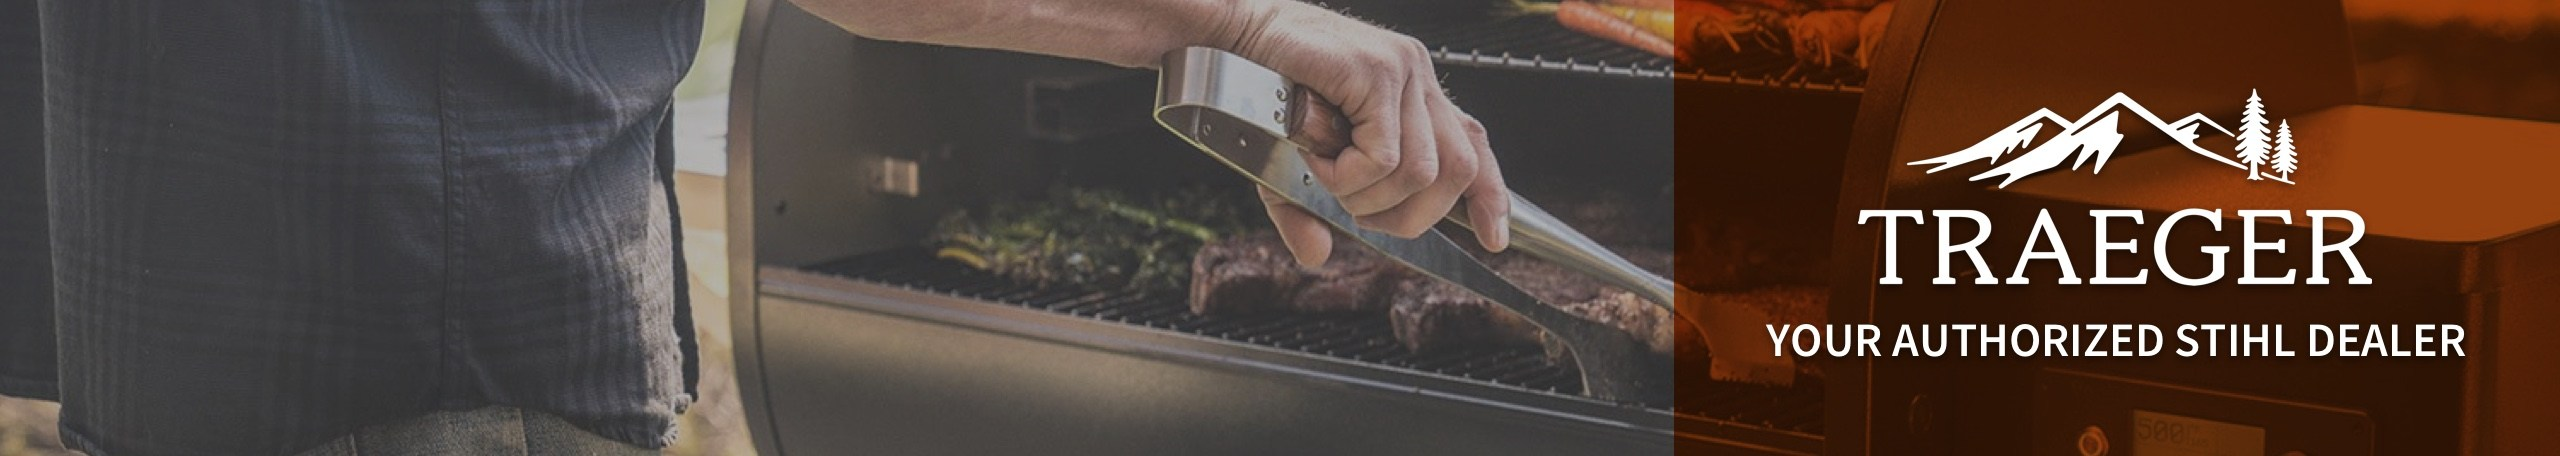 Traeger Grill with steaks and Traeger logo with Your Authorized Traeger Dealer subheading